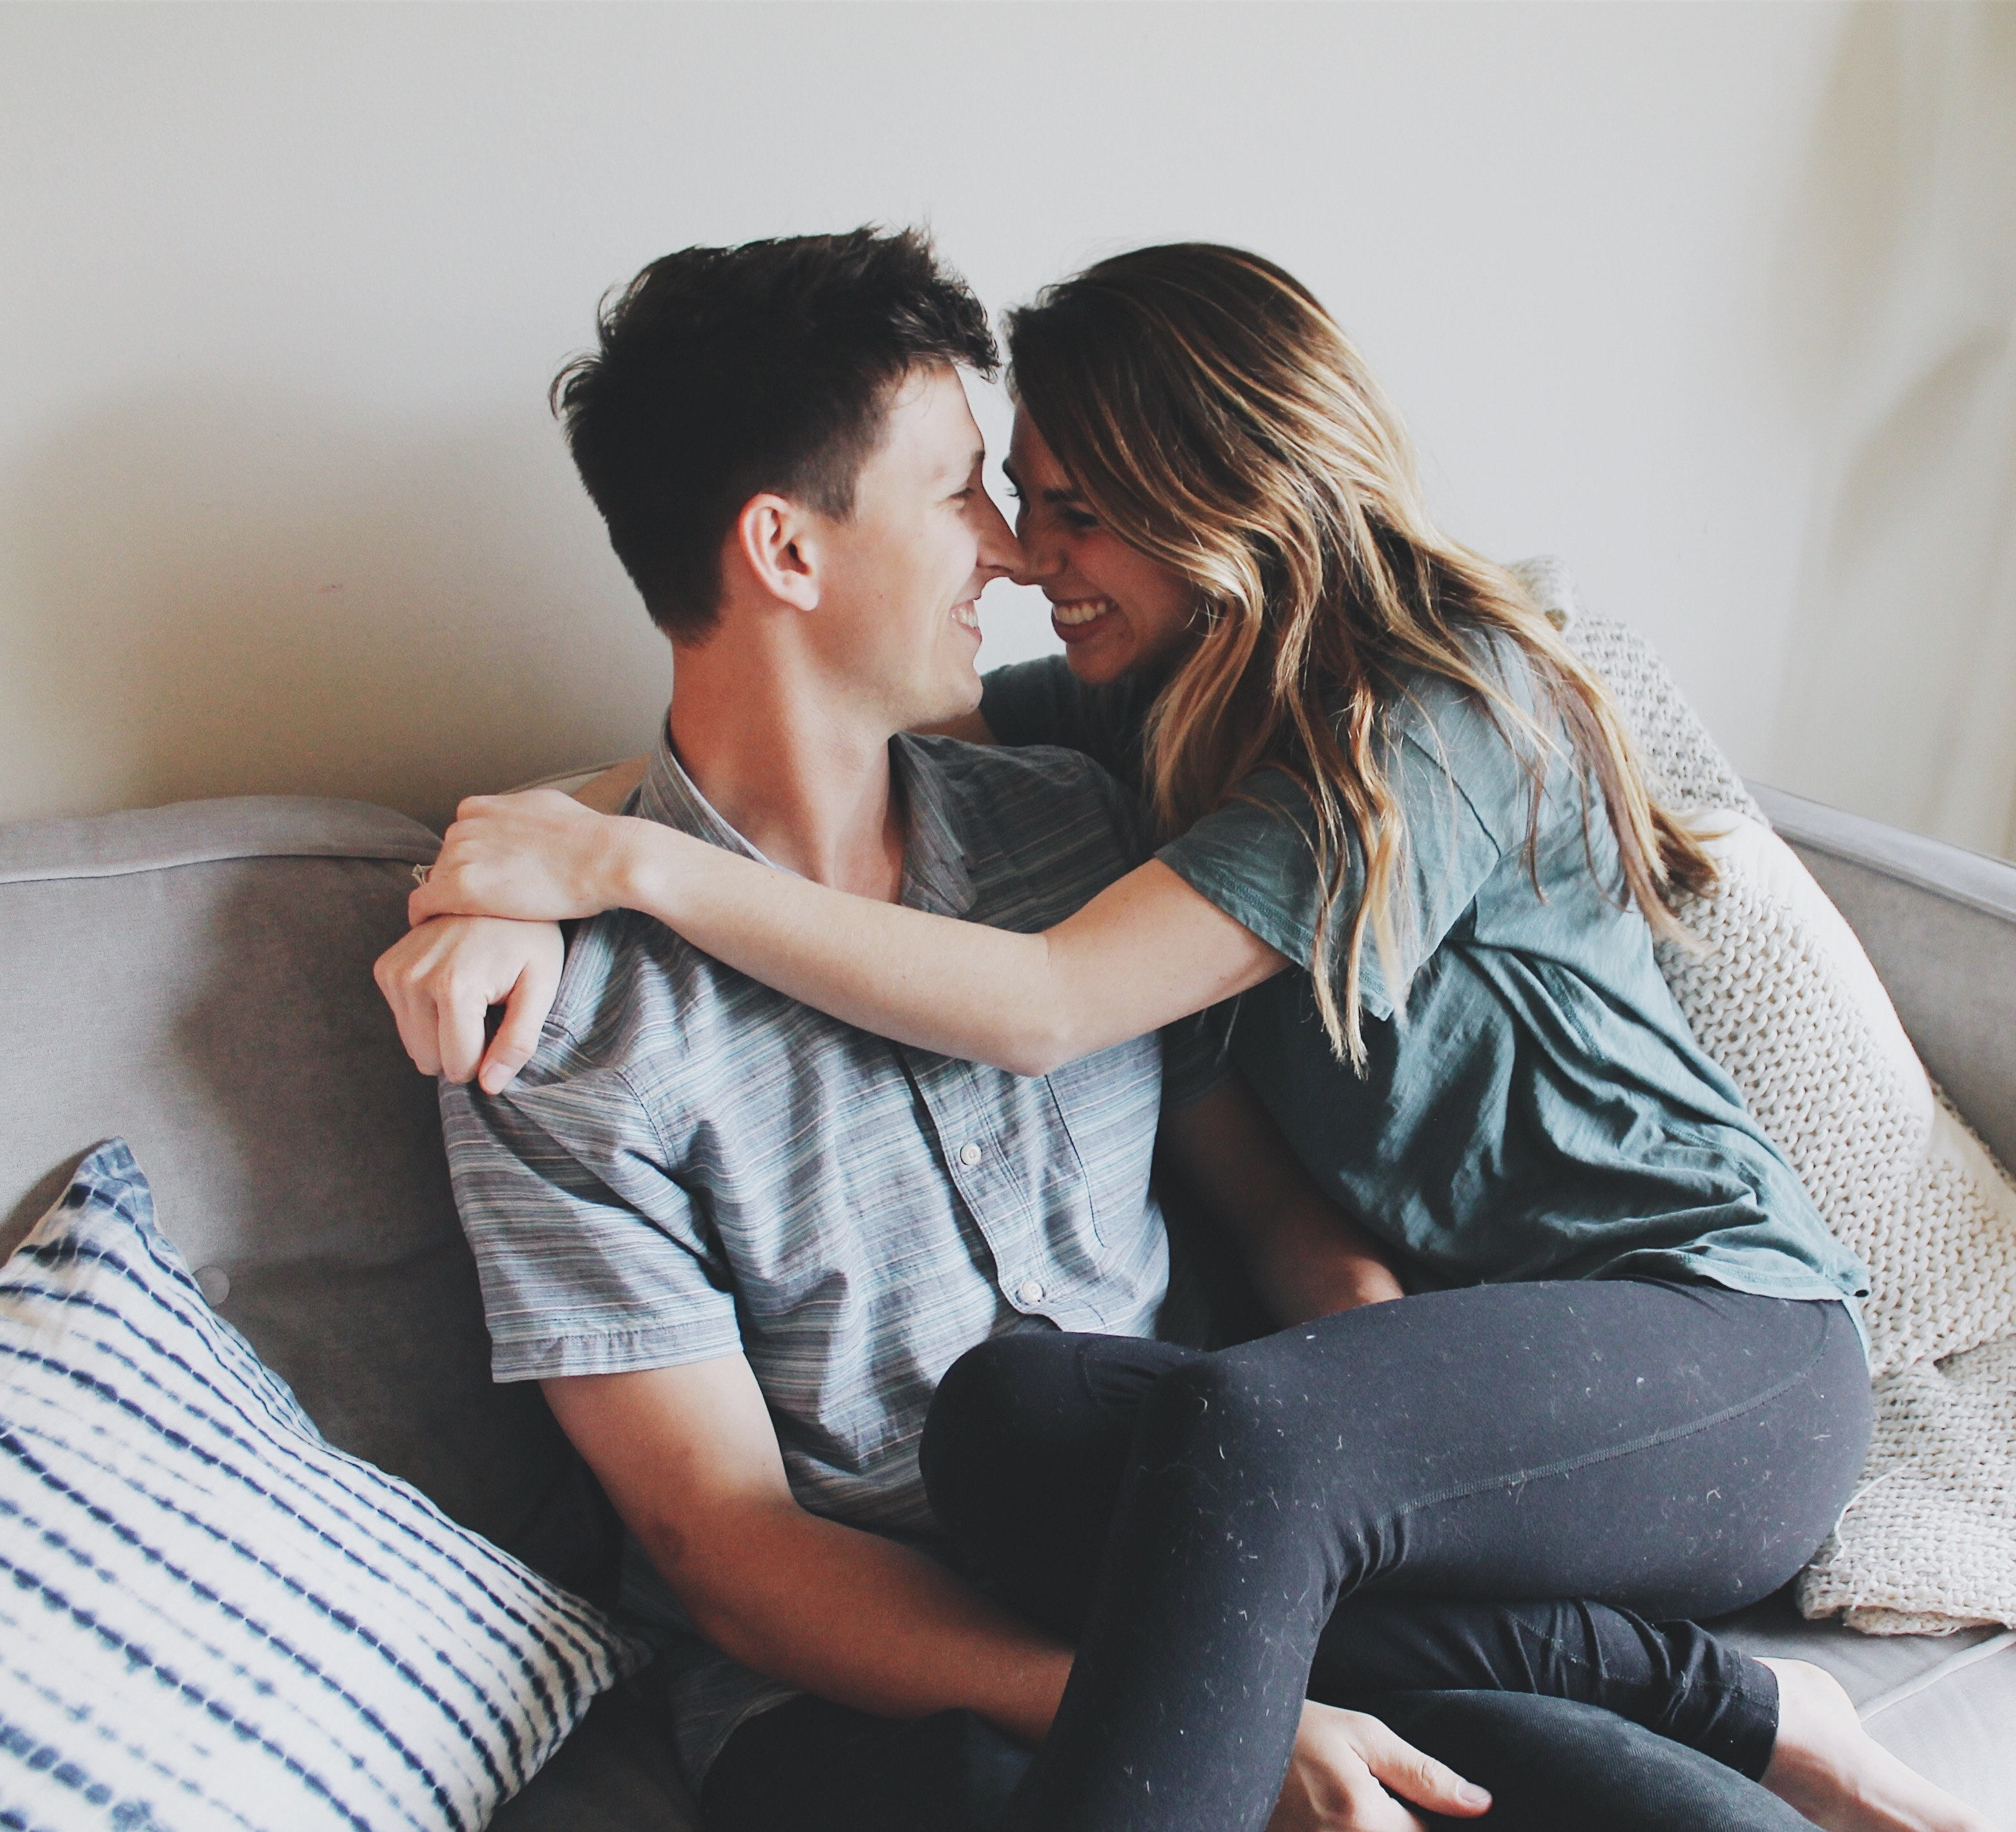 Signs dating will lead to relationship